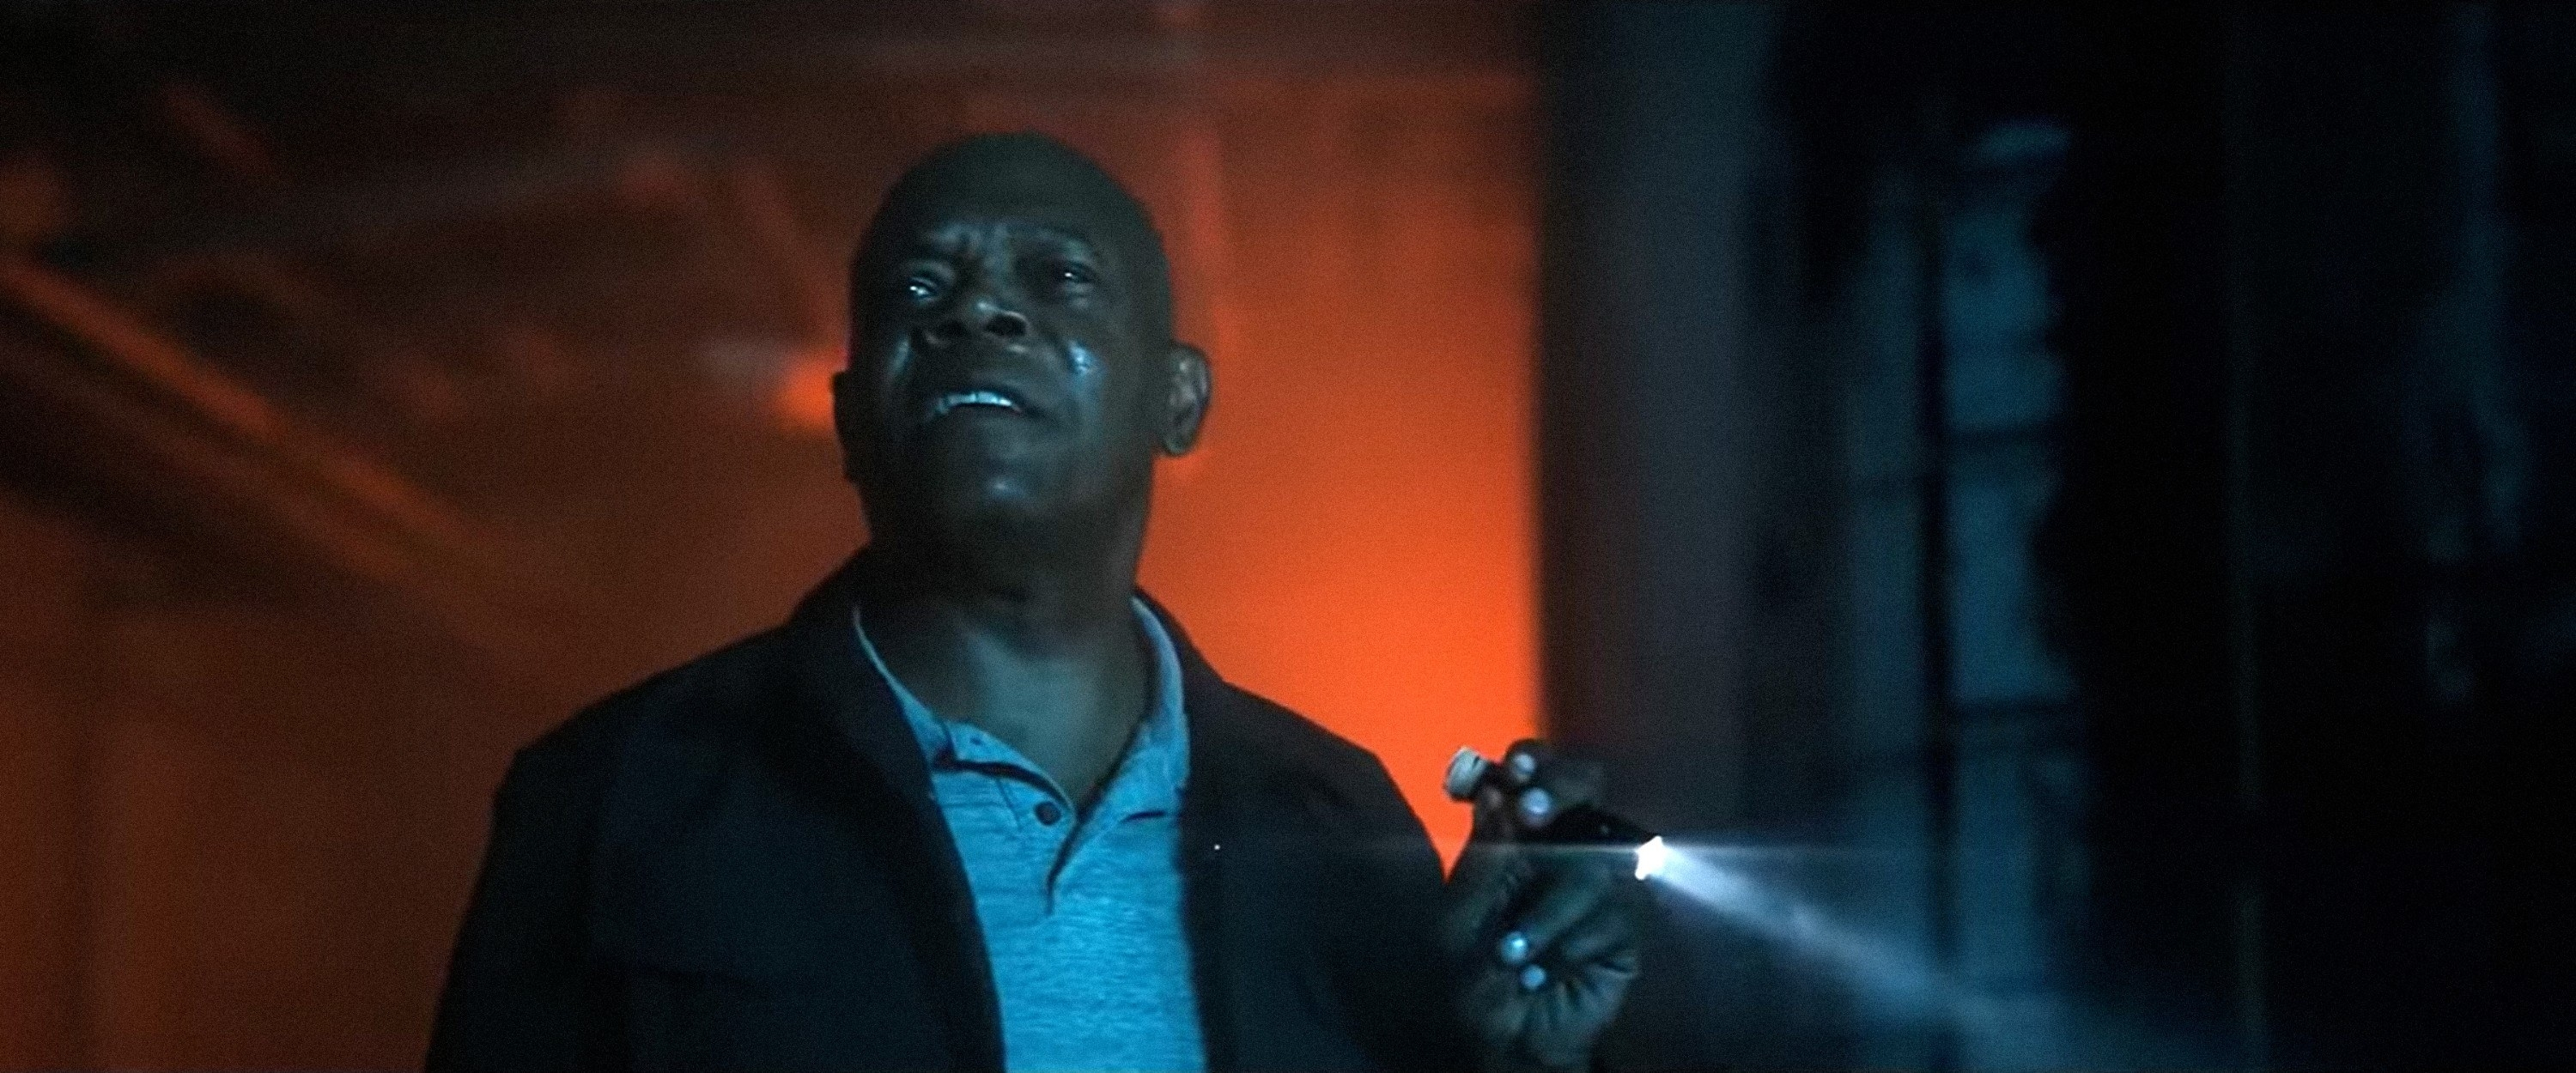 Samuel L. Jackson using a flashlight while looking ahead